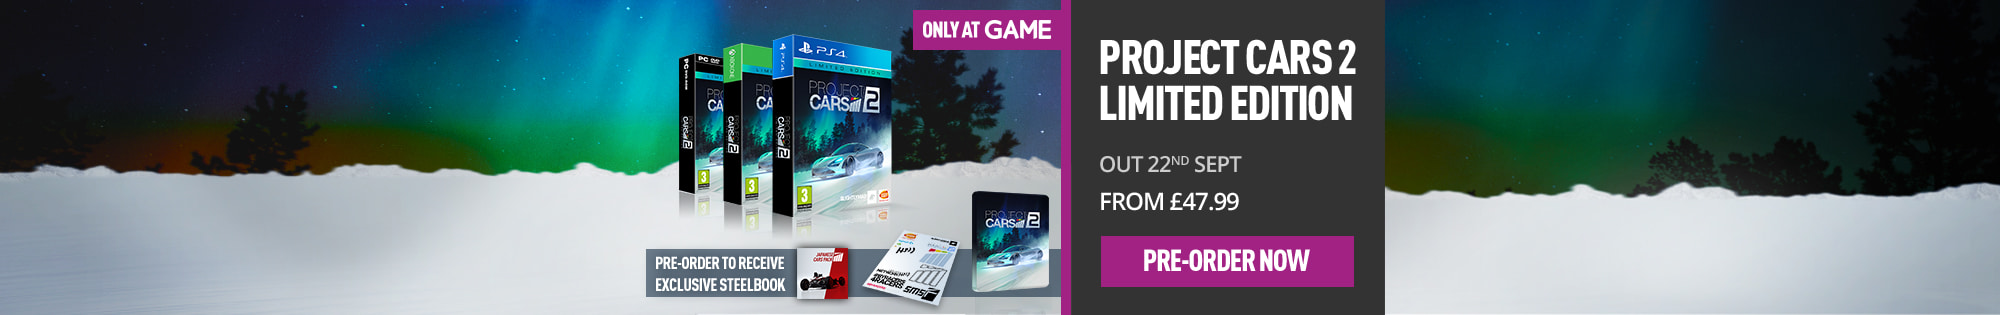 Project Cars 2 Limited Edition - Only at GAME - Homepage Banner